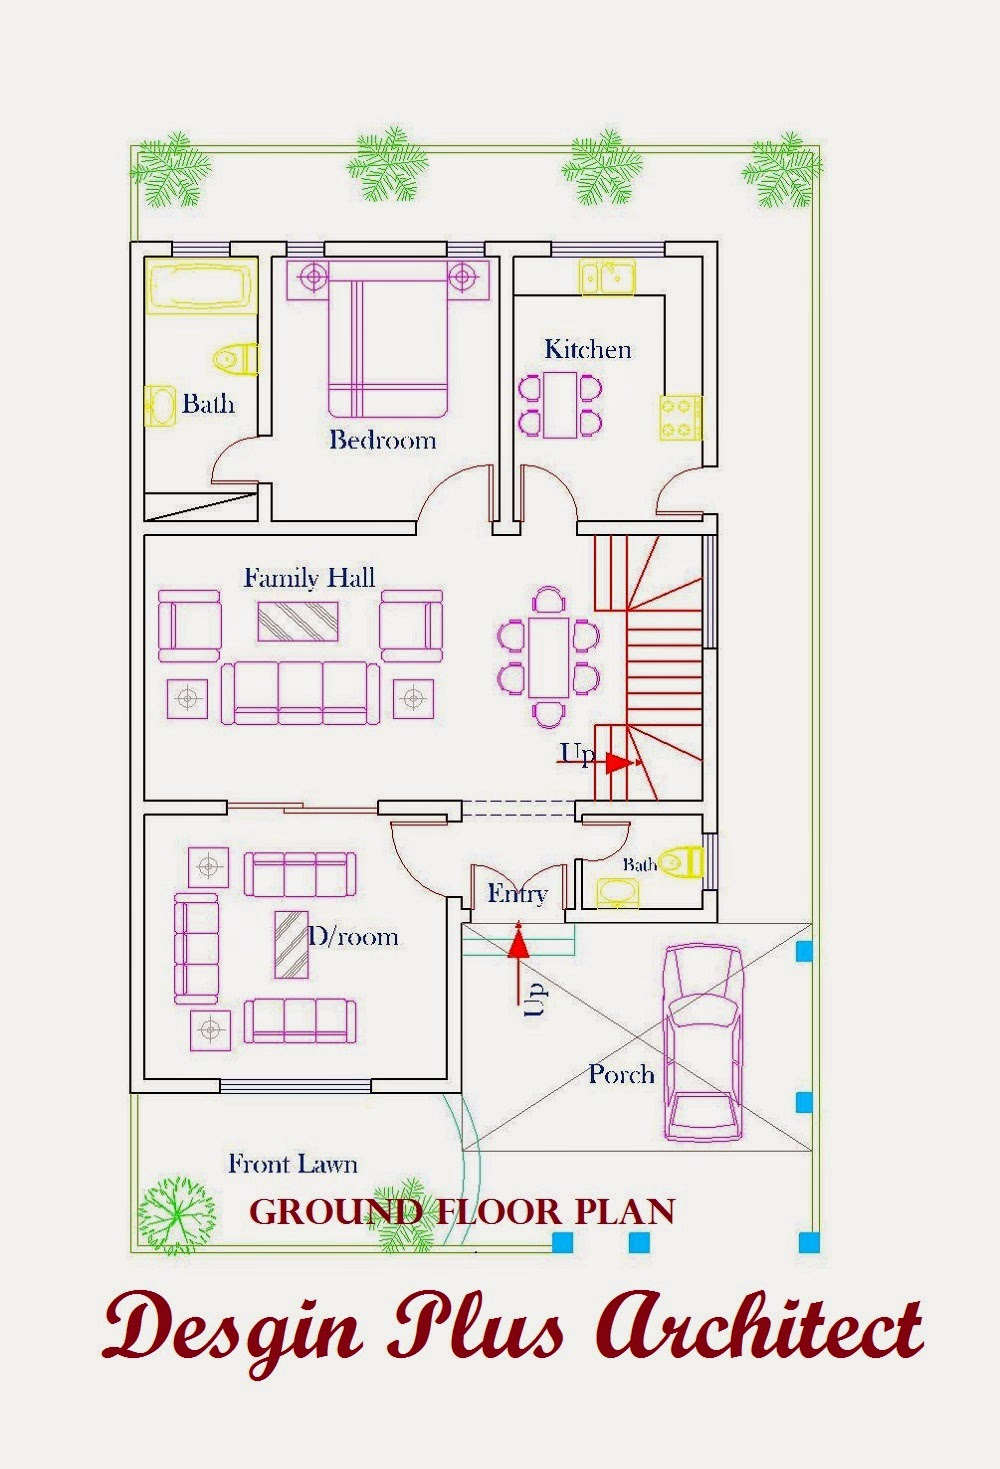 Home plans in pakistan home decor architect designer 2d home plan Create own house plan